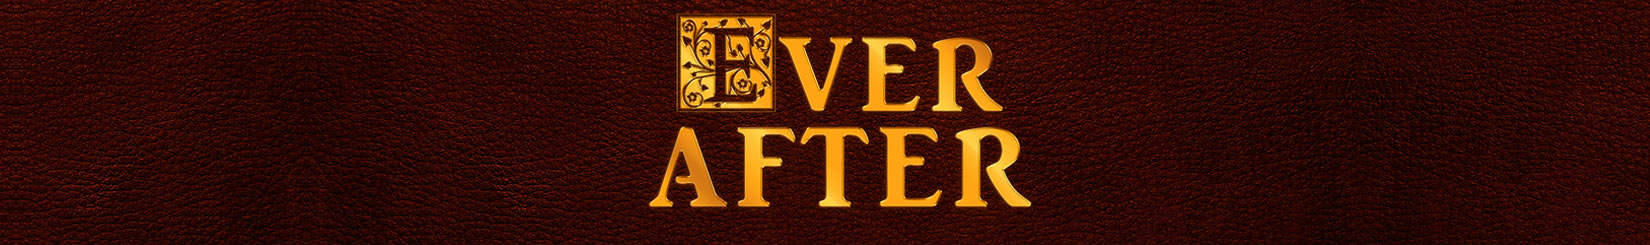 ever_after2